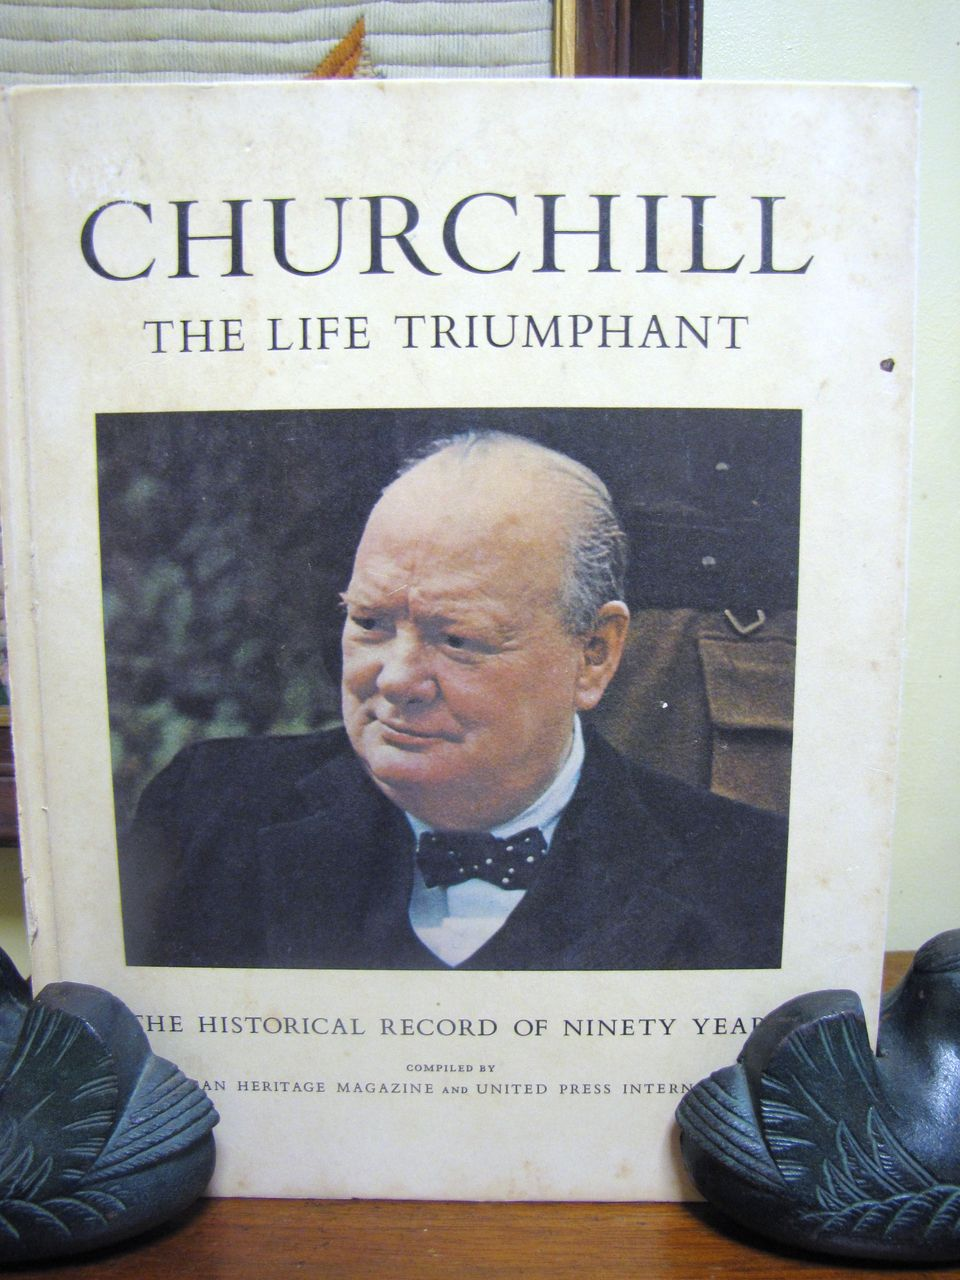 H, Aug. 1965, Churchill The Life Triumphant The Historical Record of Ninety Years 1st edition